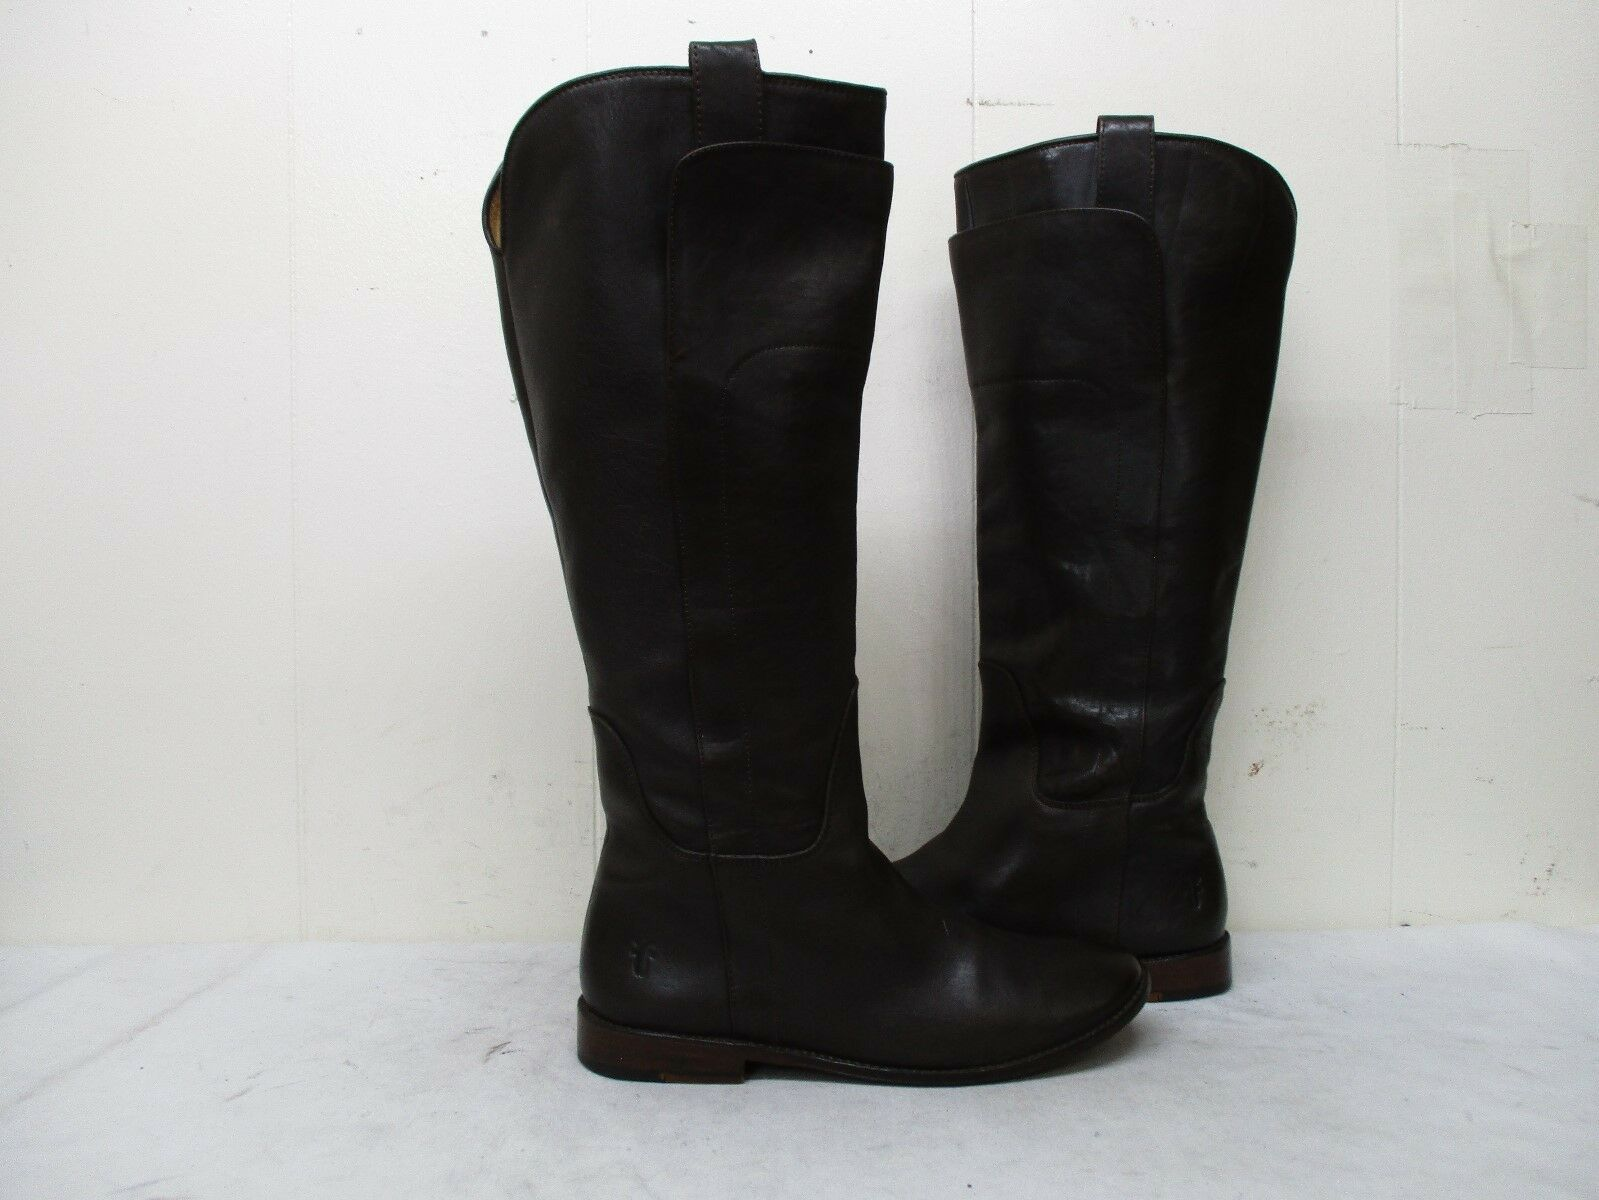 Frye Brown Leather Knee High Riding Boots Womens Size 8 B Style 77535